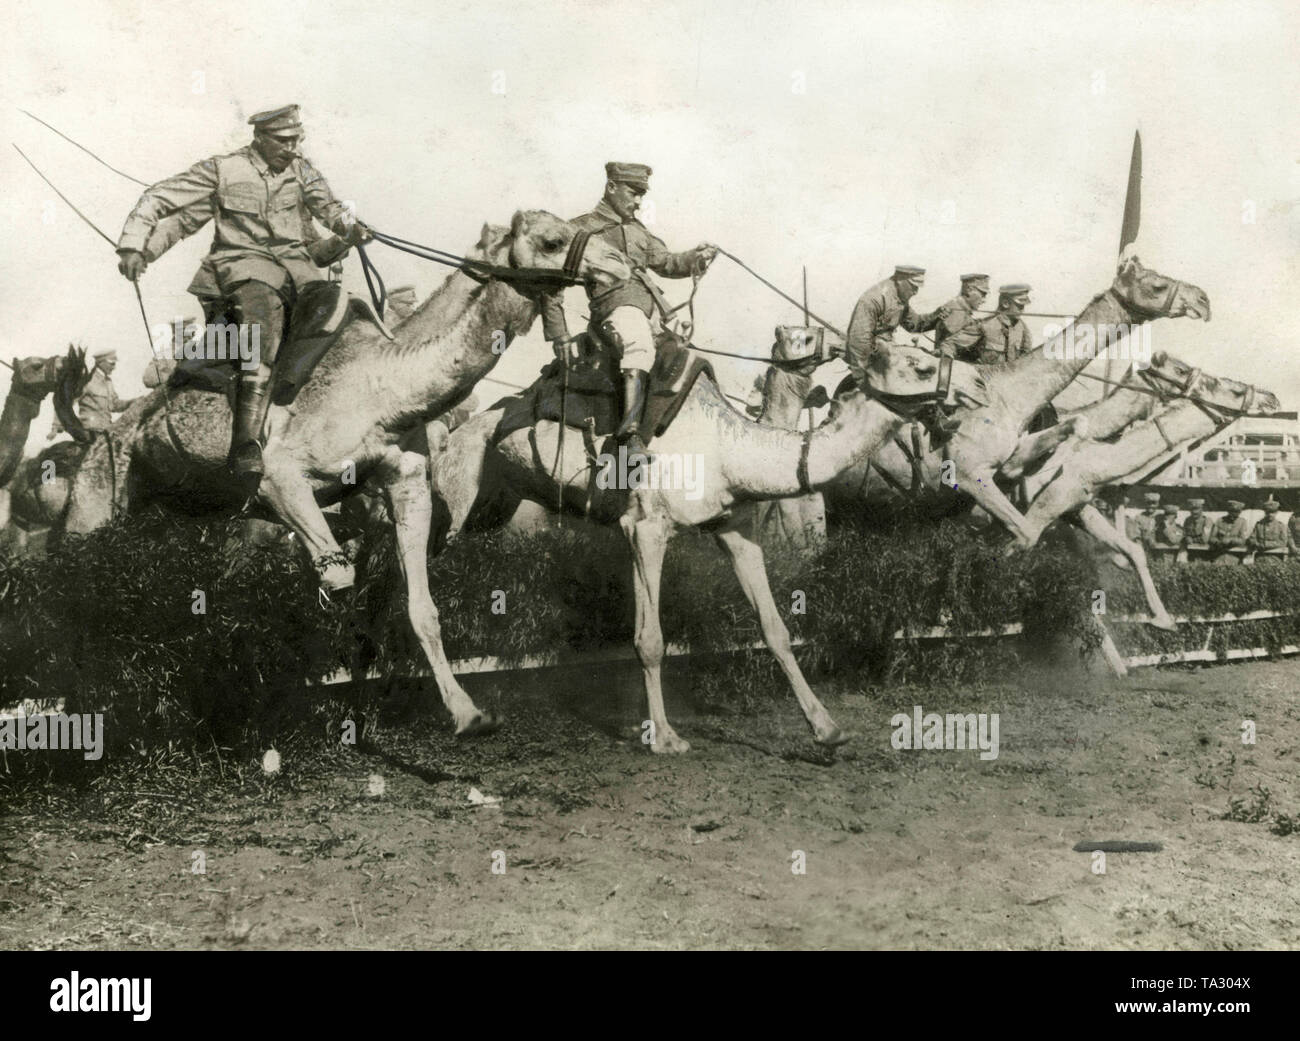 The Camel Corps of the German Schutztruppen were mainly used during the battles against the Herero. The photo shows camel riders during an obstacle race at a training (undated shot). - Stock Image